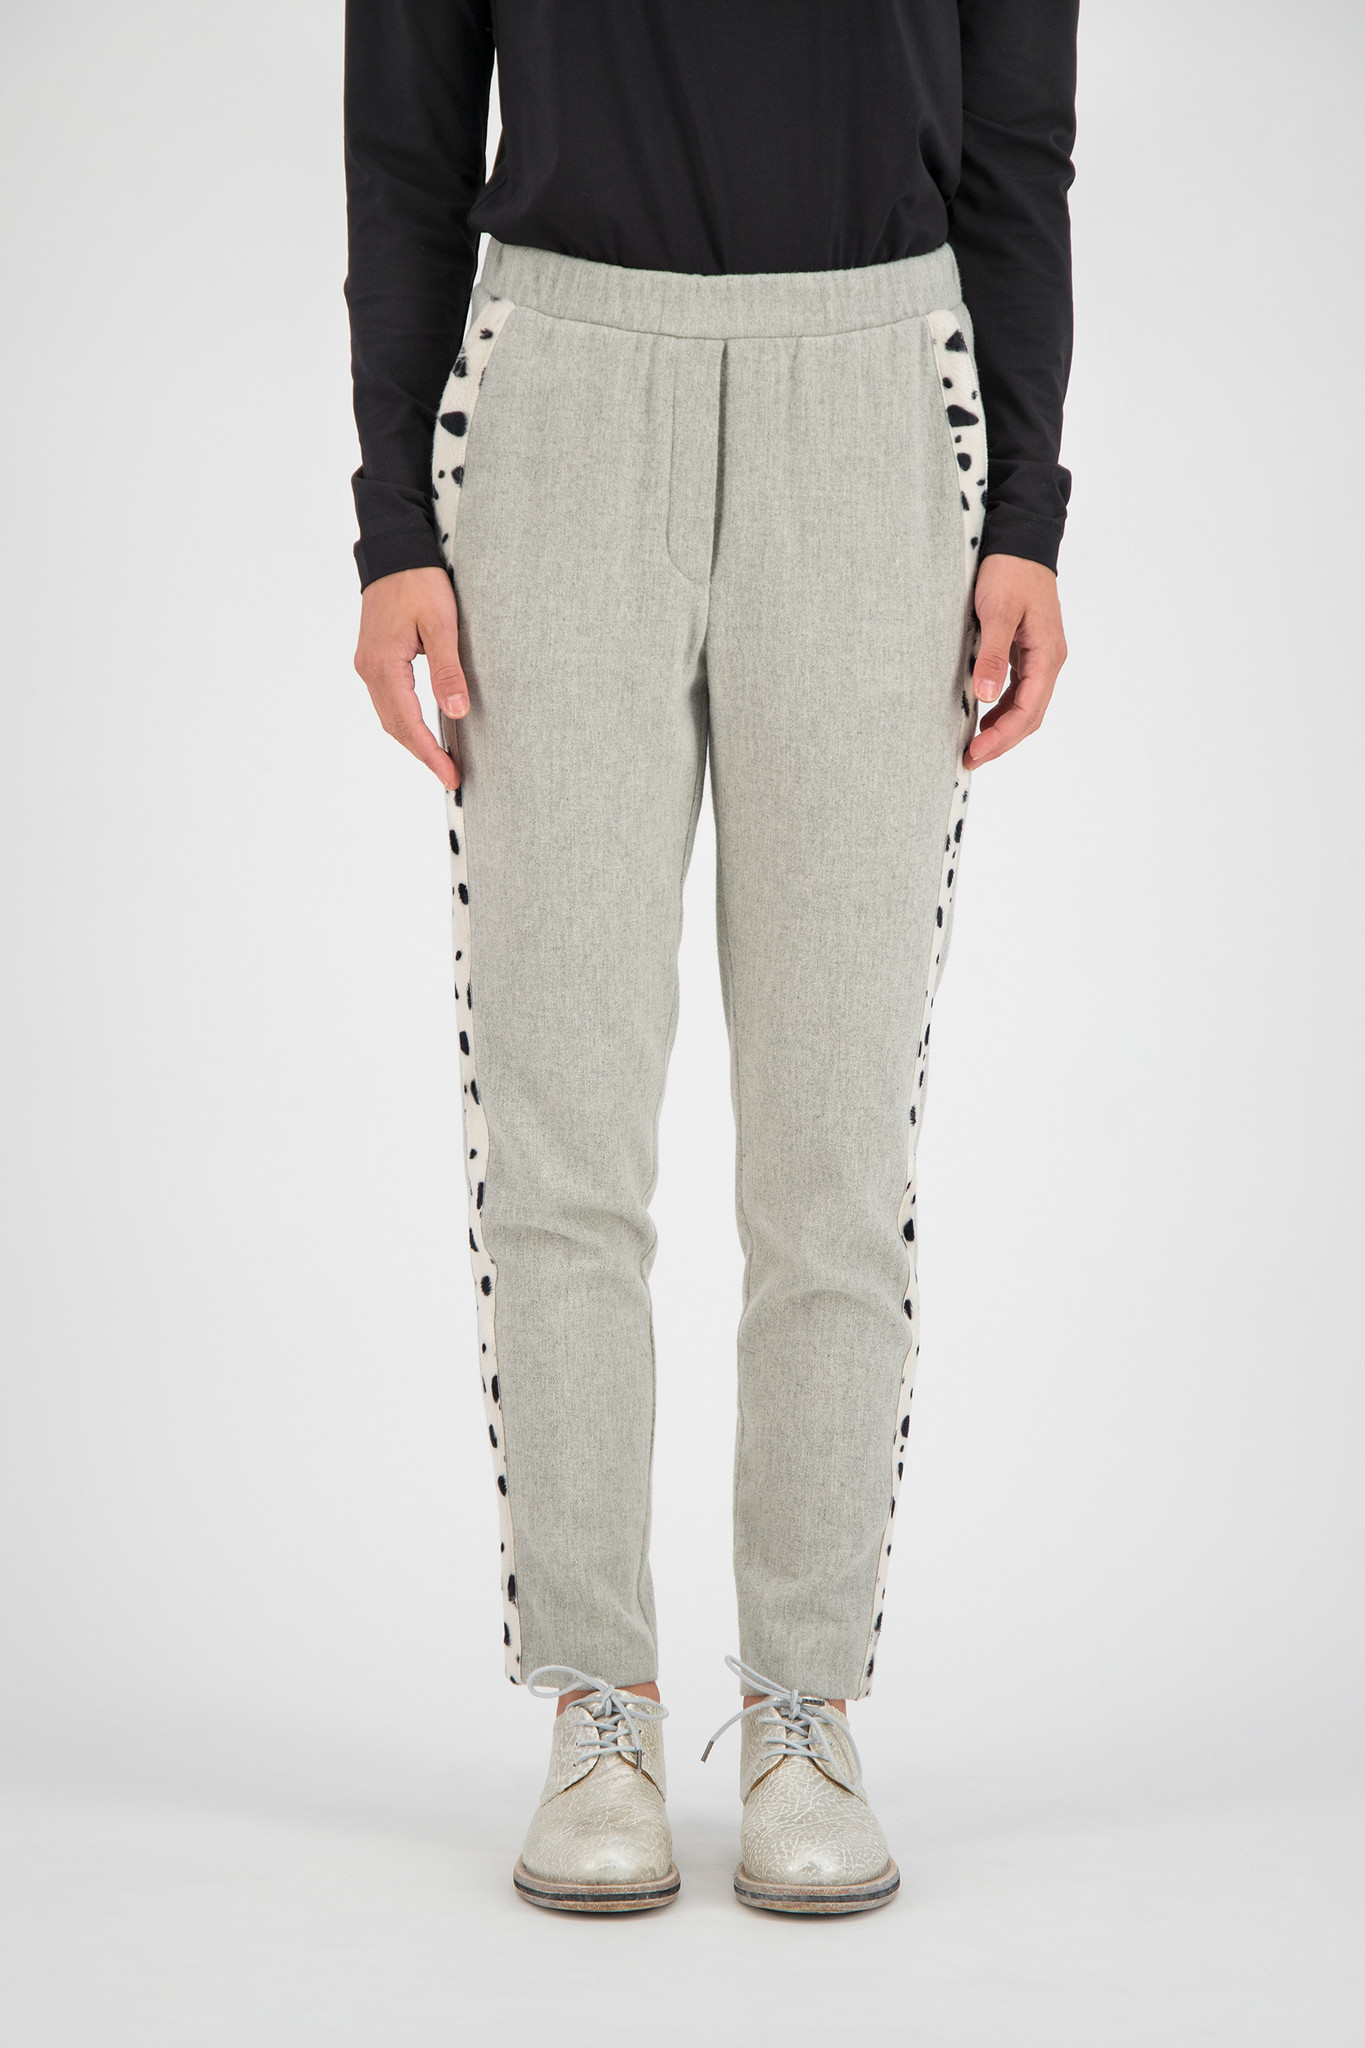 SYLVER Flannel Trousers - Light Grey